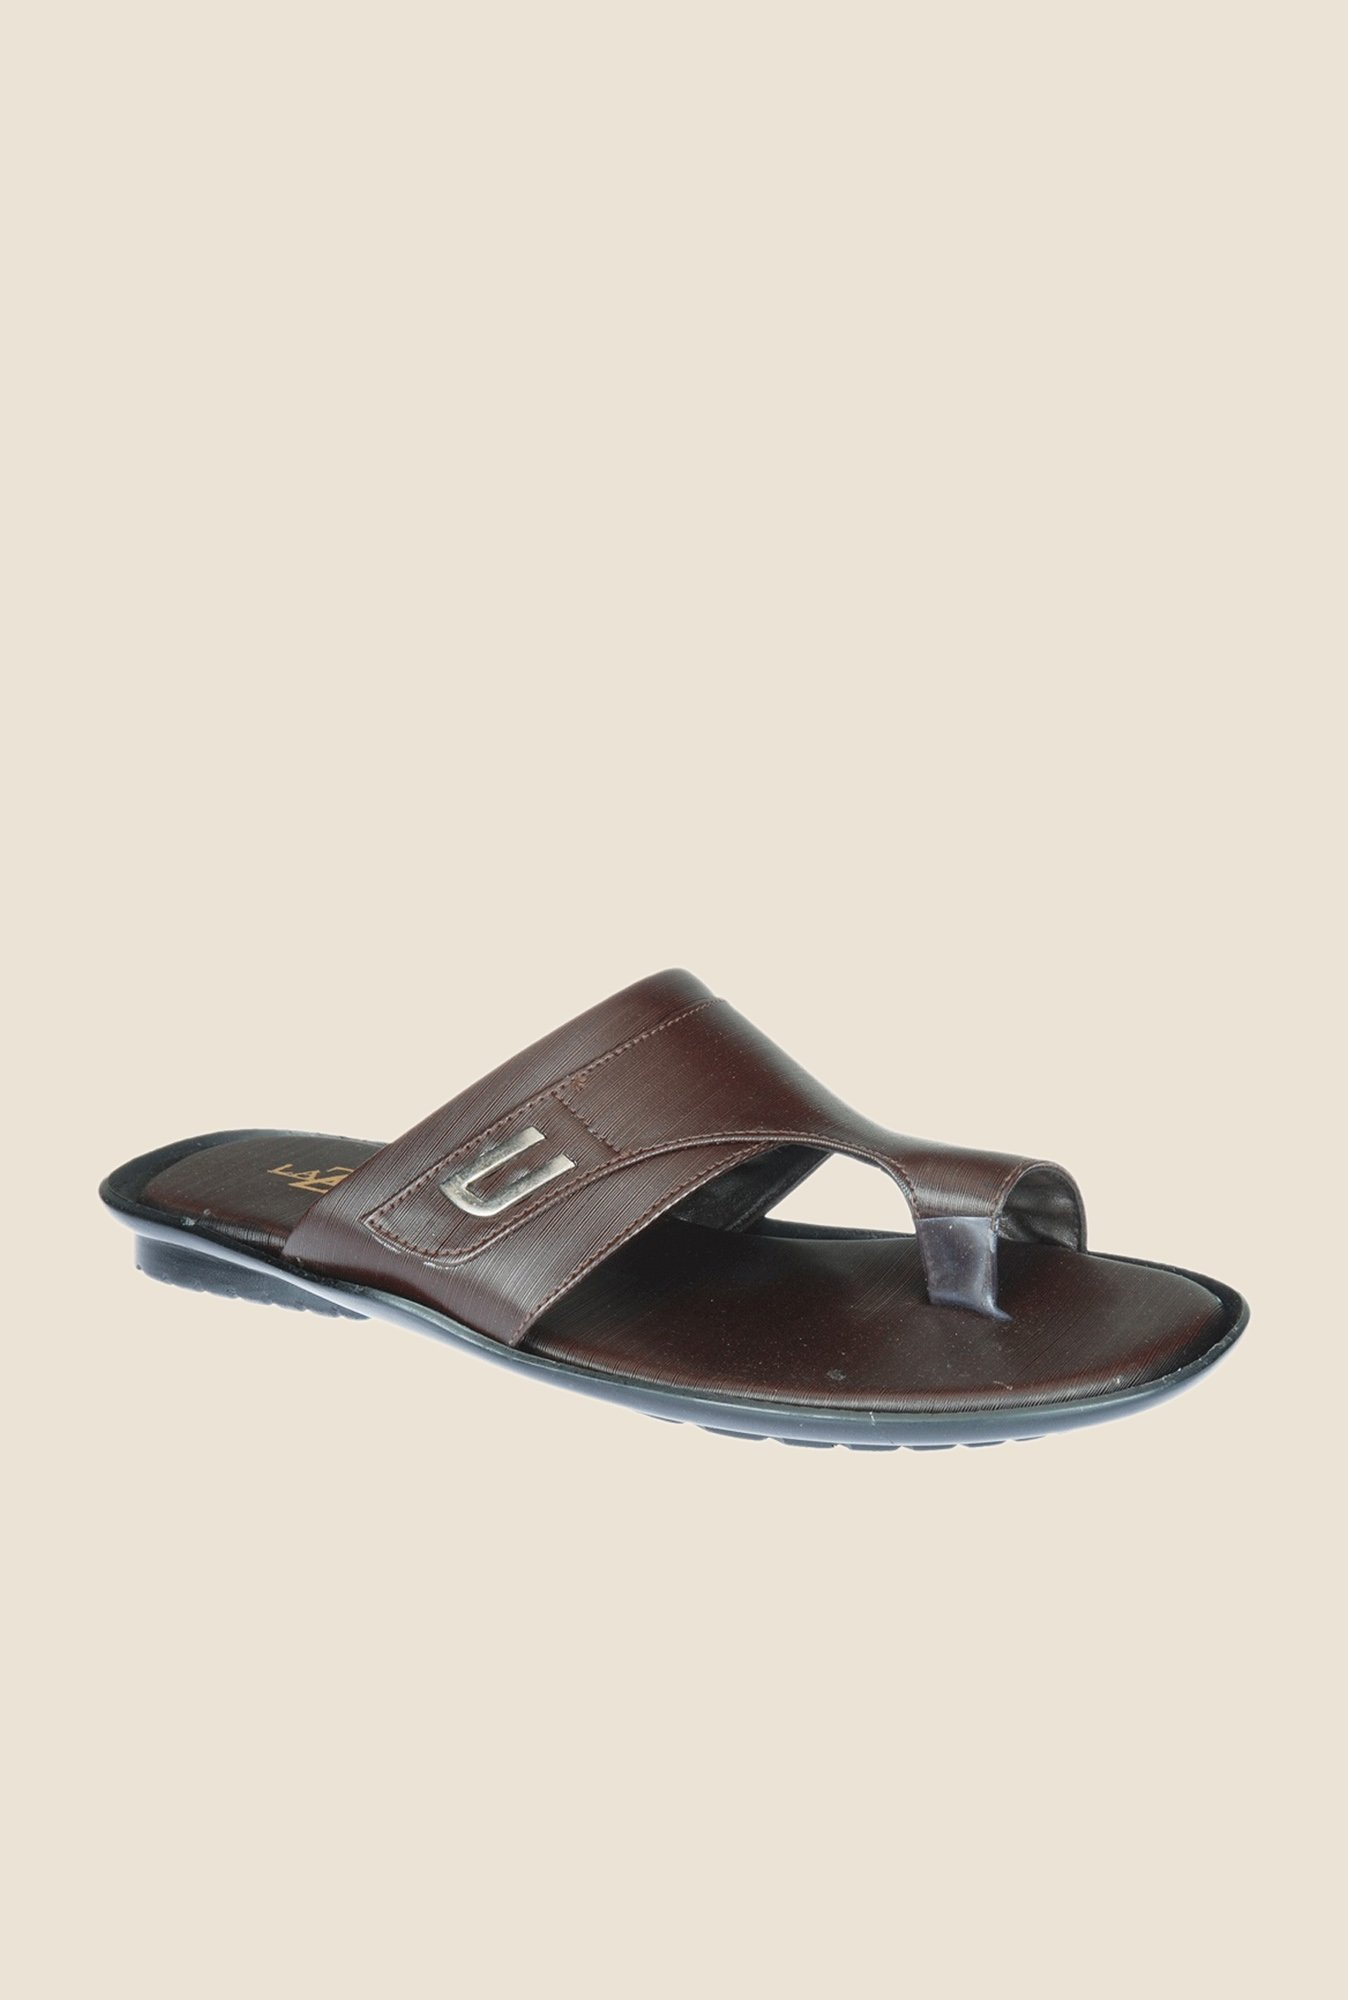 Khadim's Brown Casual Sandals